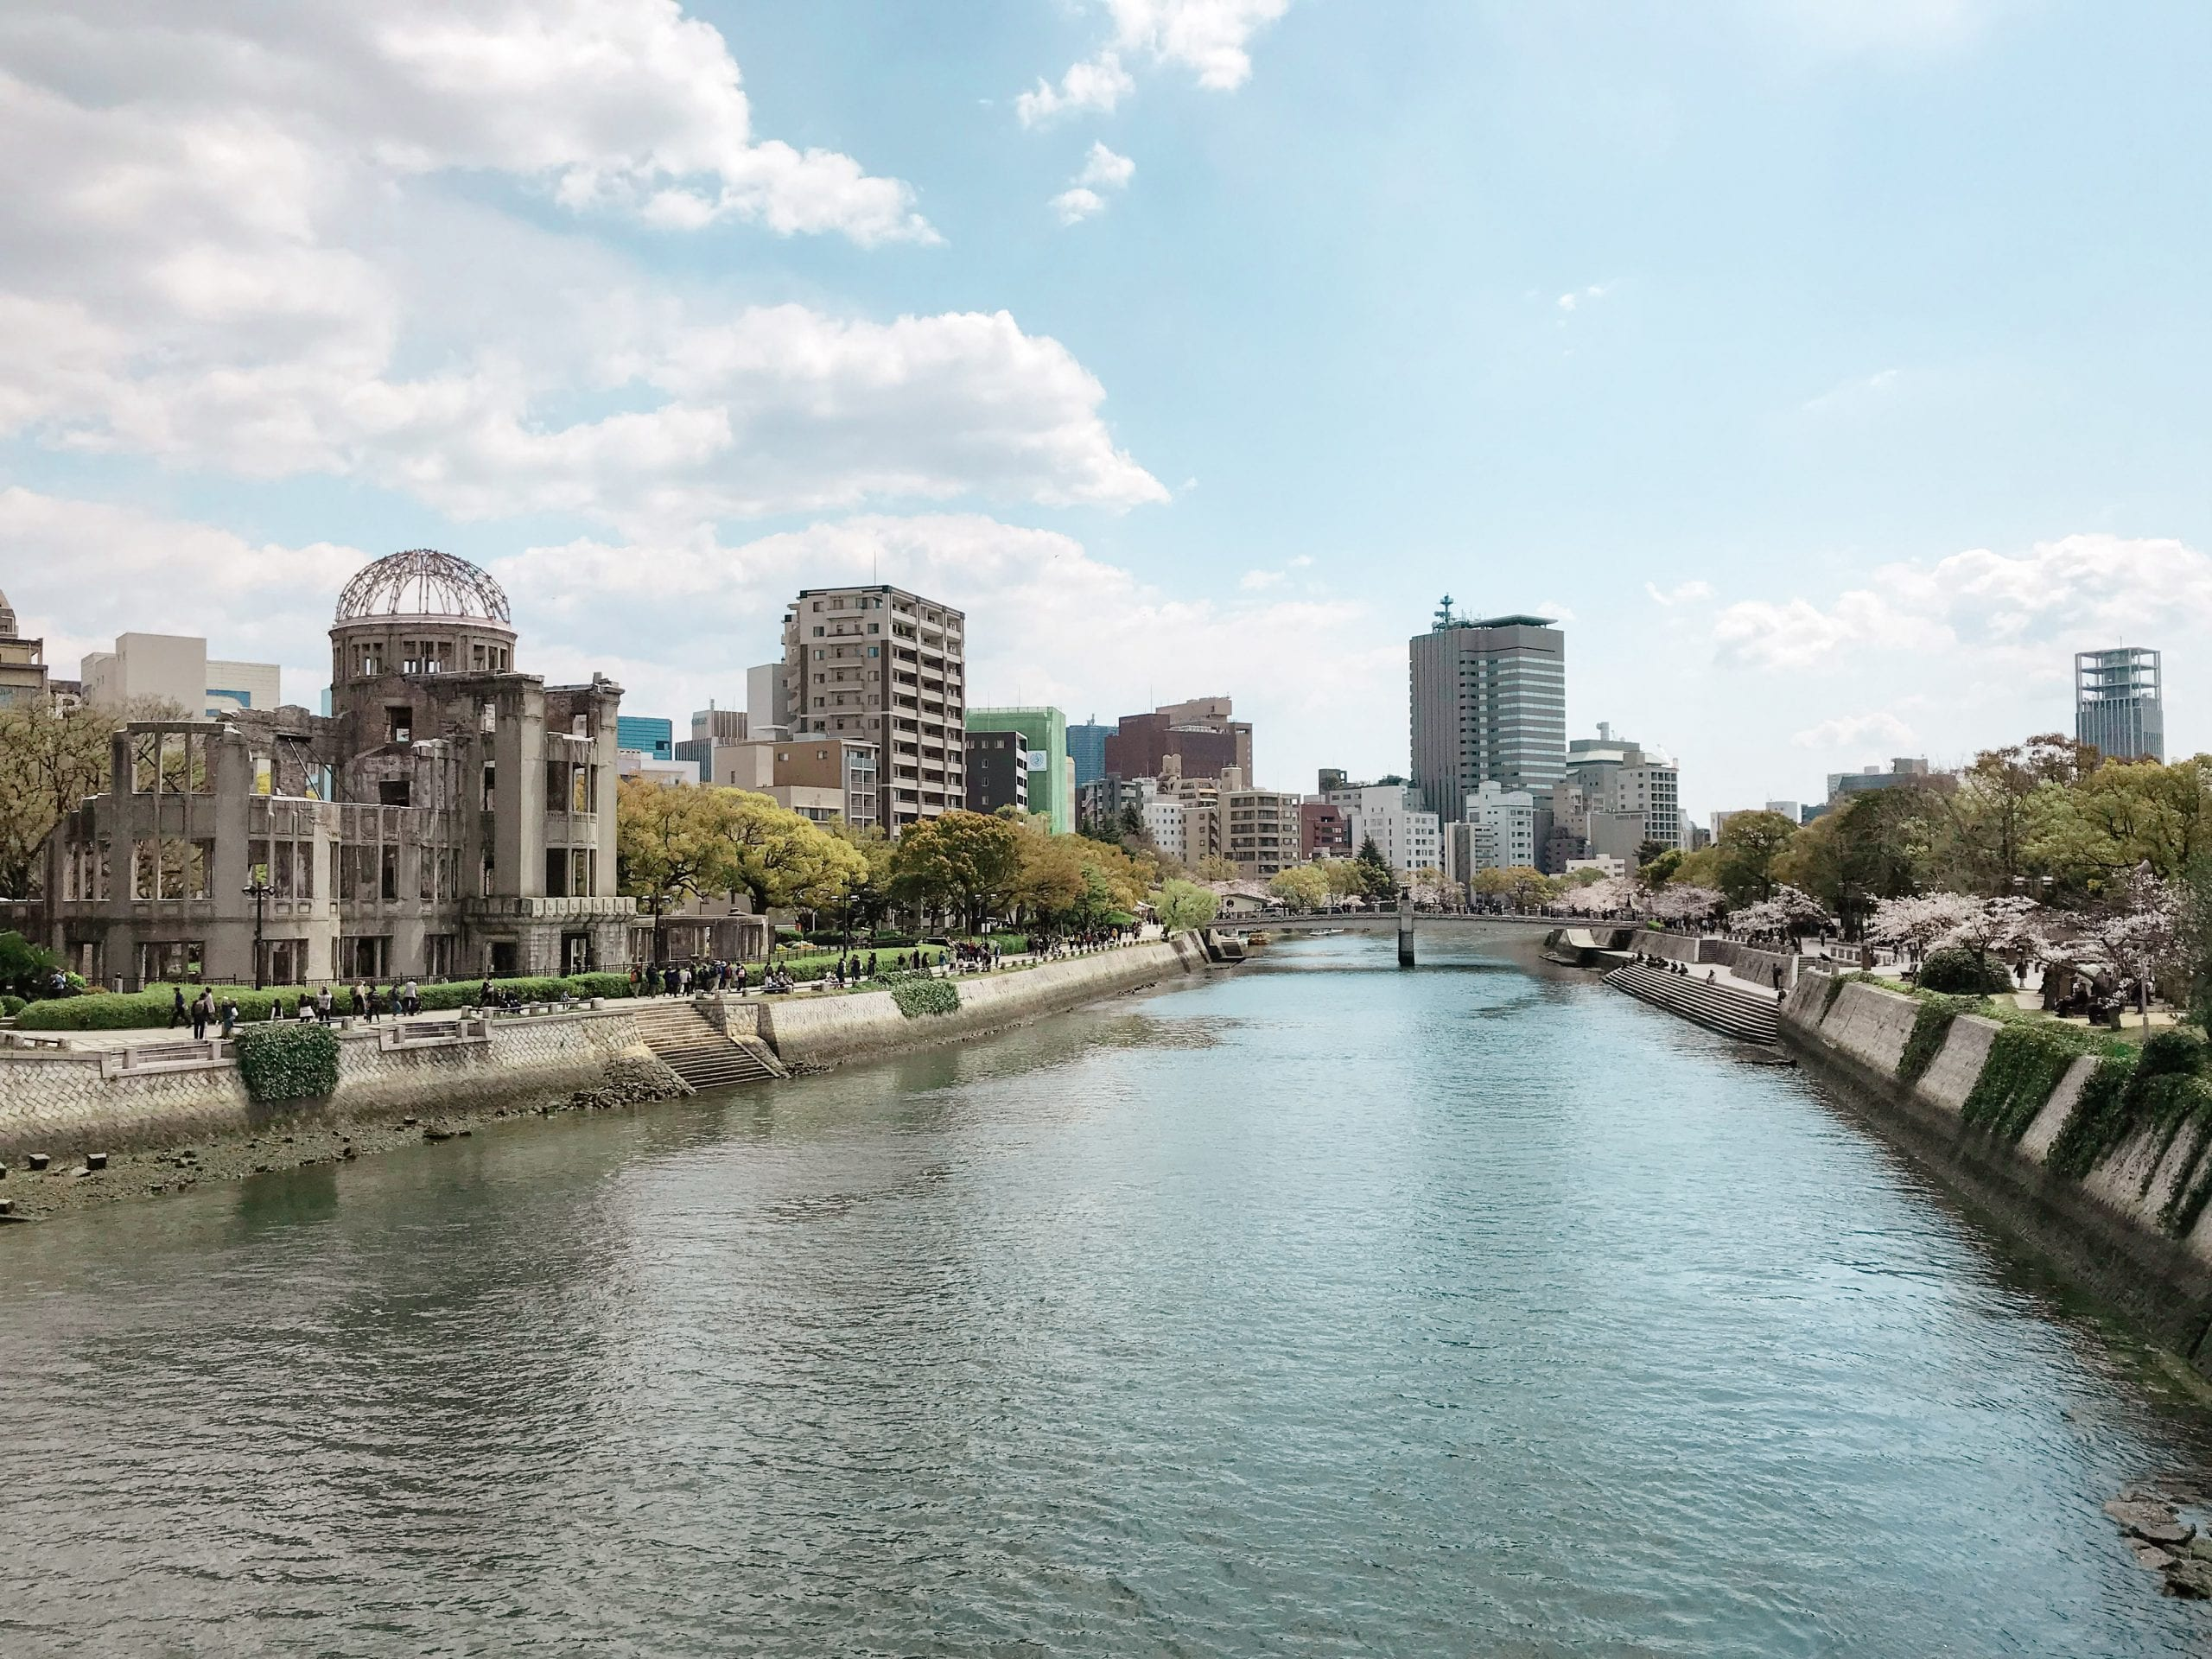 Rundreise Highlights hiroshima fluss